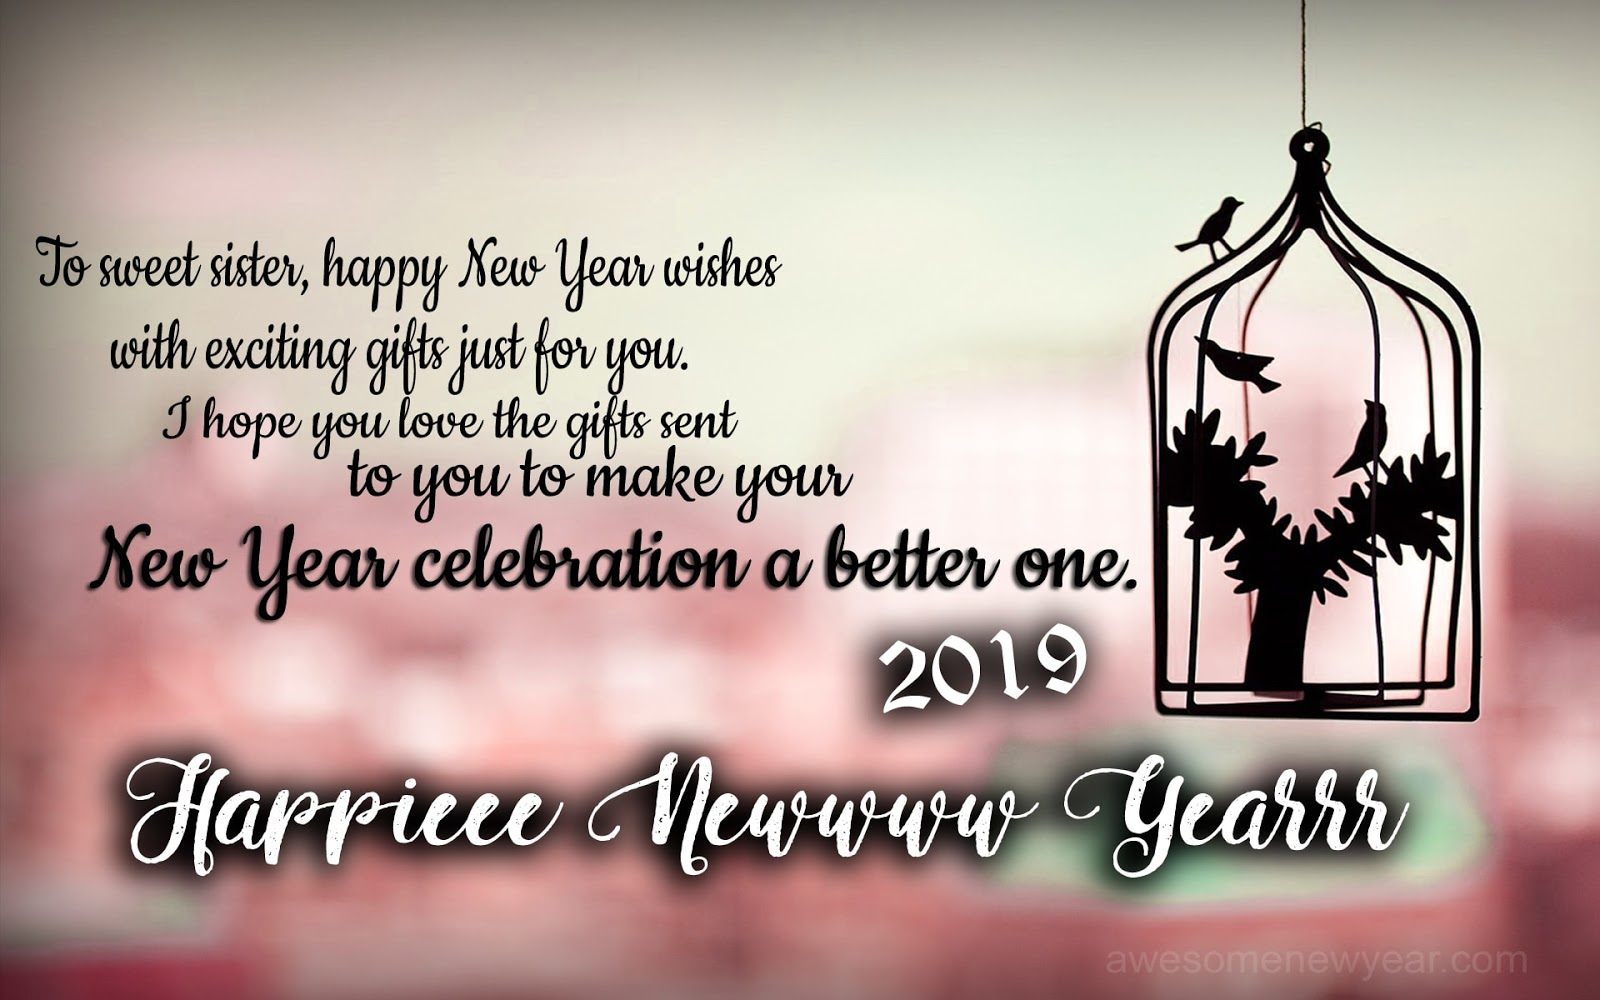 Happy New Year 2019 Quotes For Sister Latest New Year Wishes